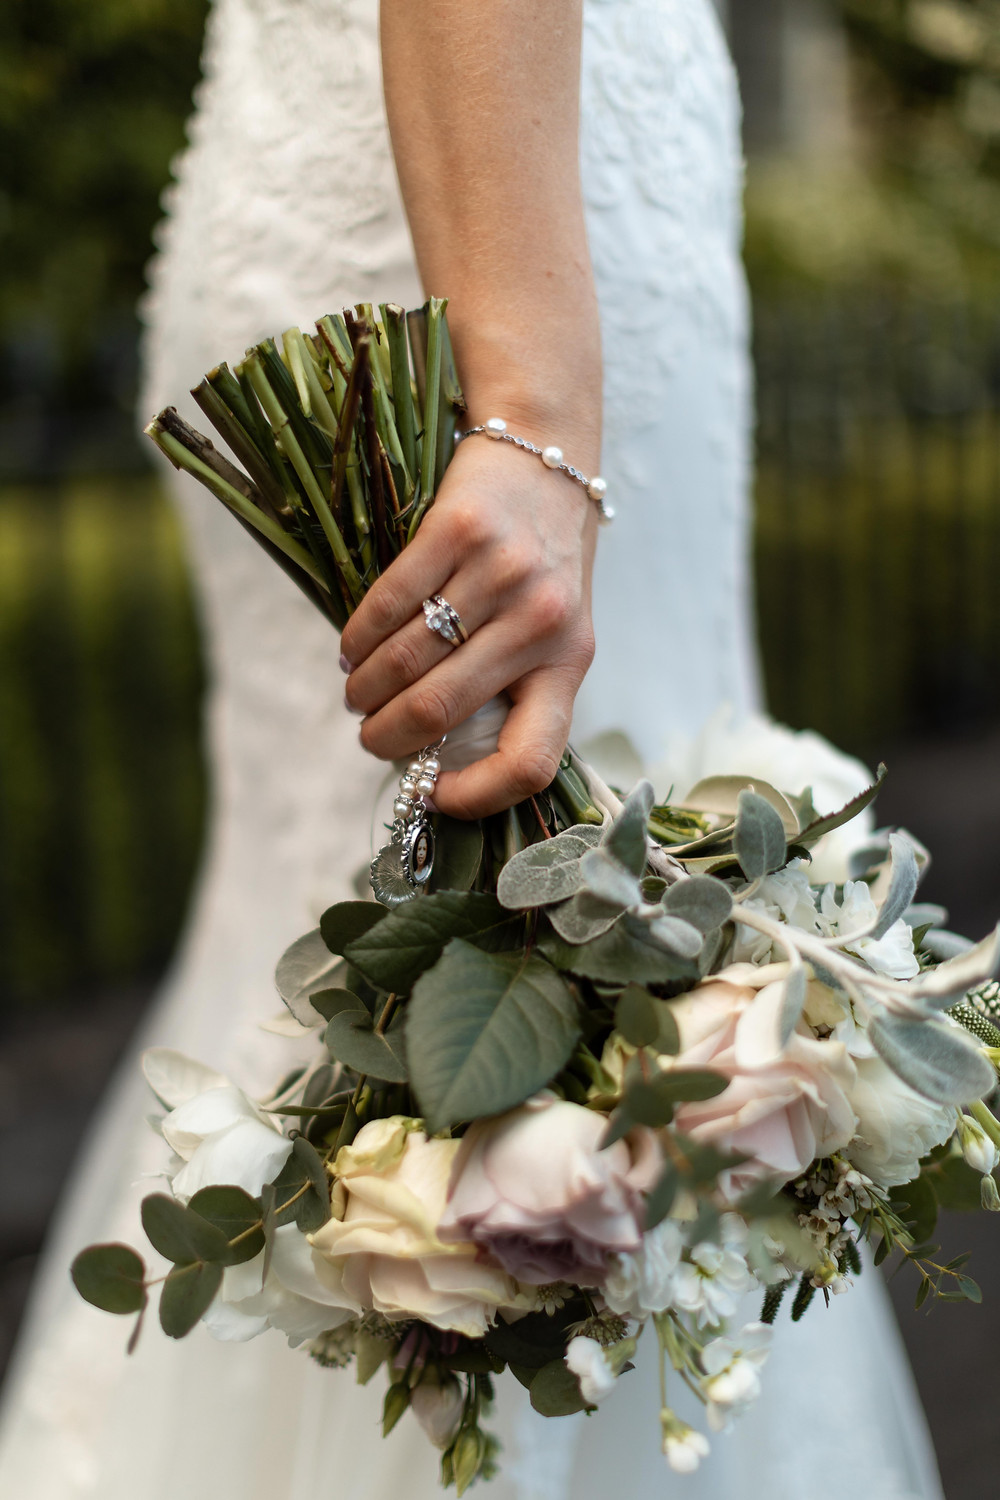 wedding photo of the brides flowers